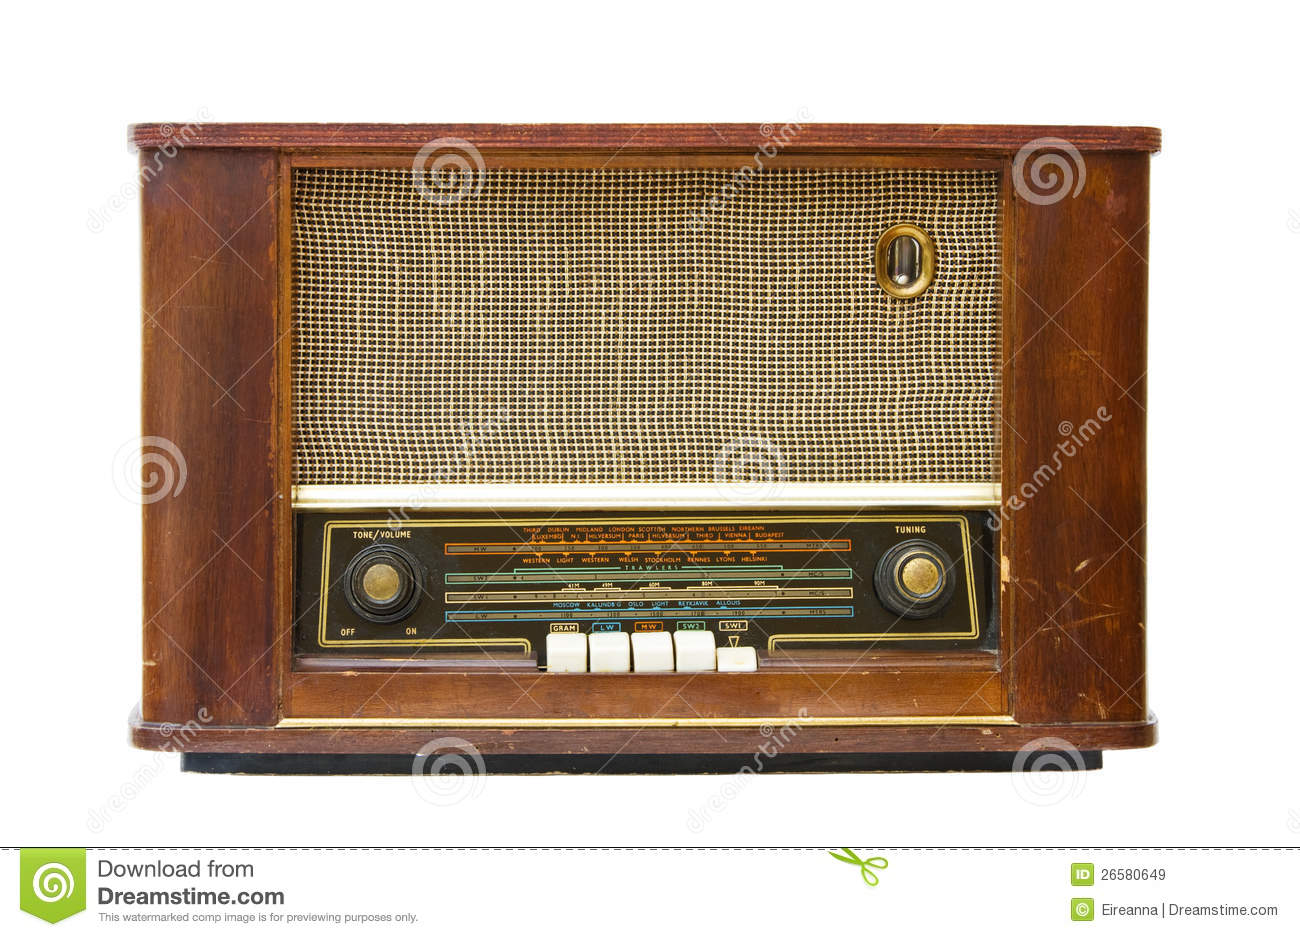 Antique Radio Transistor Royalty Free Stock Images - Image: 26580649